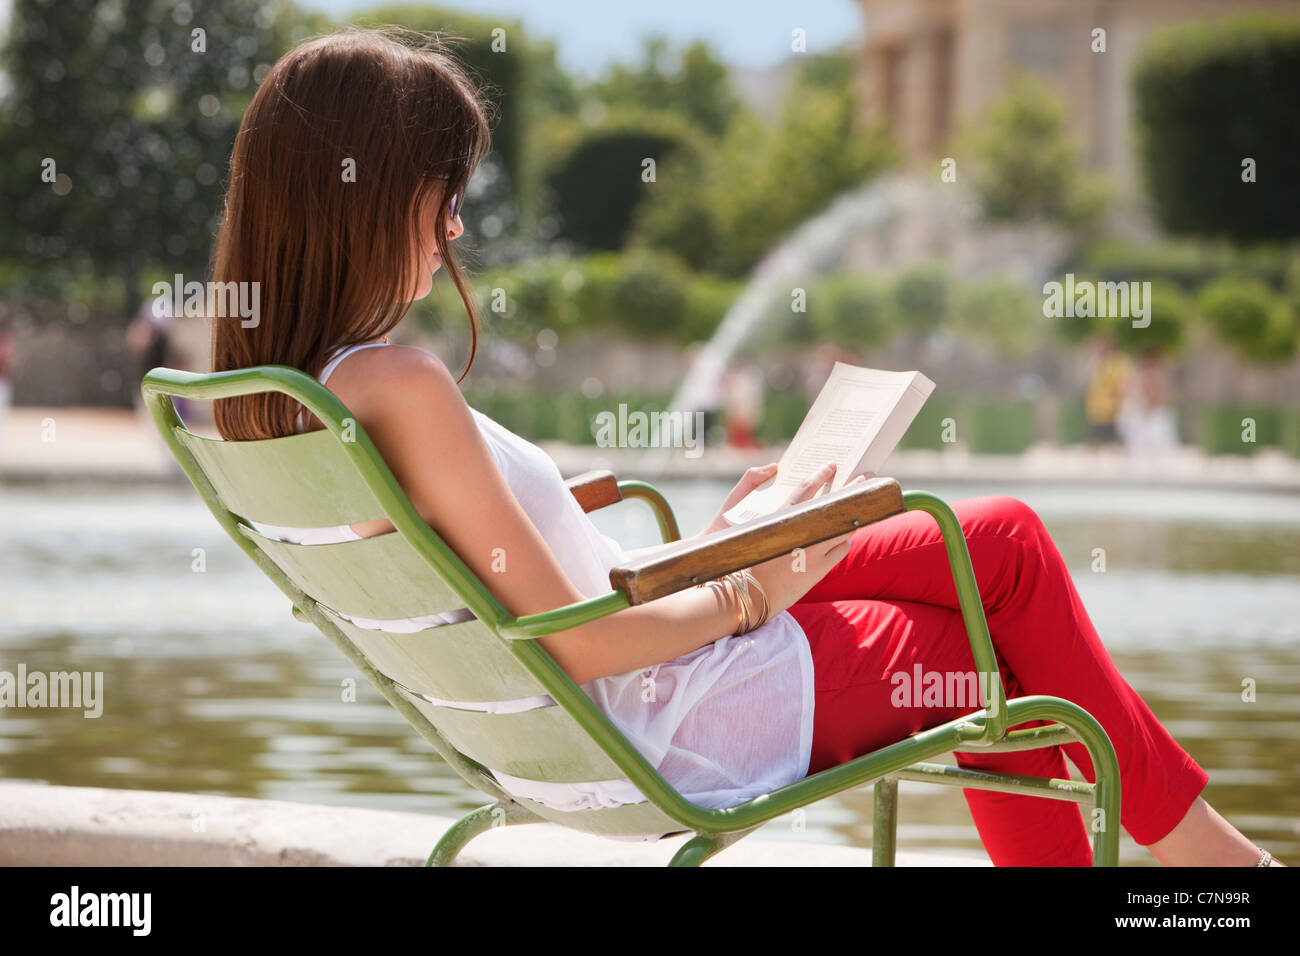 Woman reading a magazine, Jardin des Tuileries, Paris, Ile-de-France, France - Stock Image